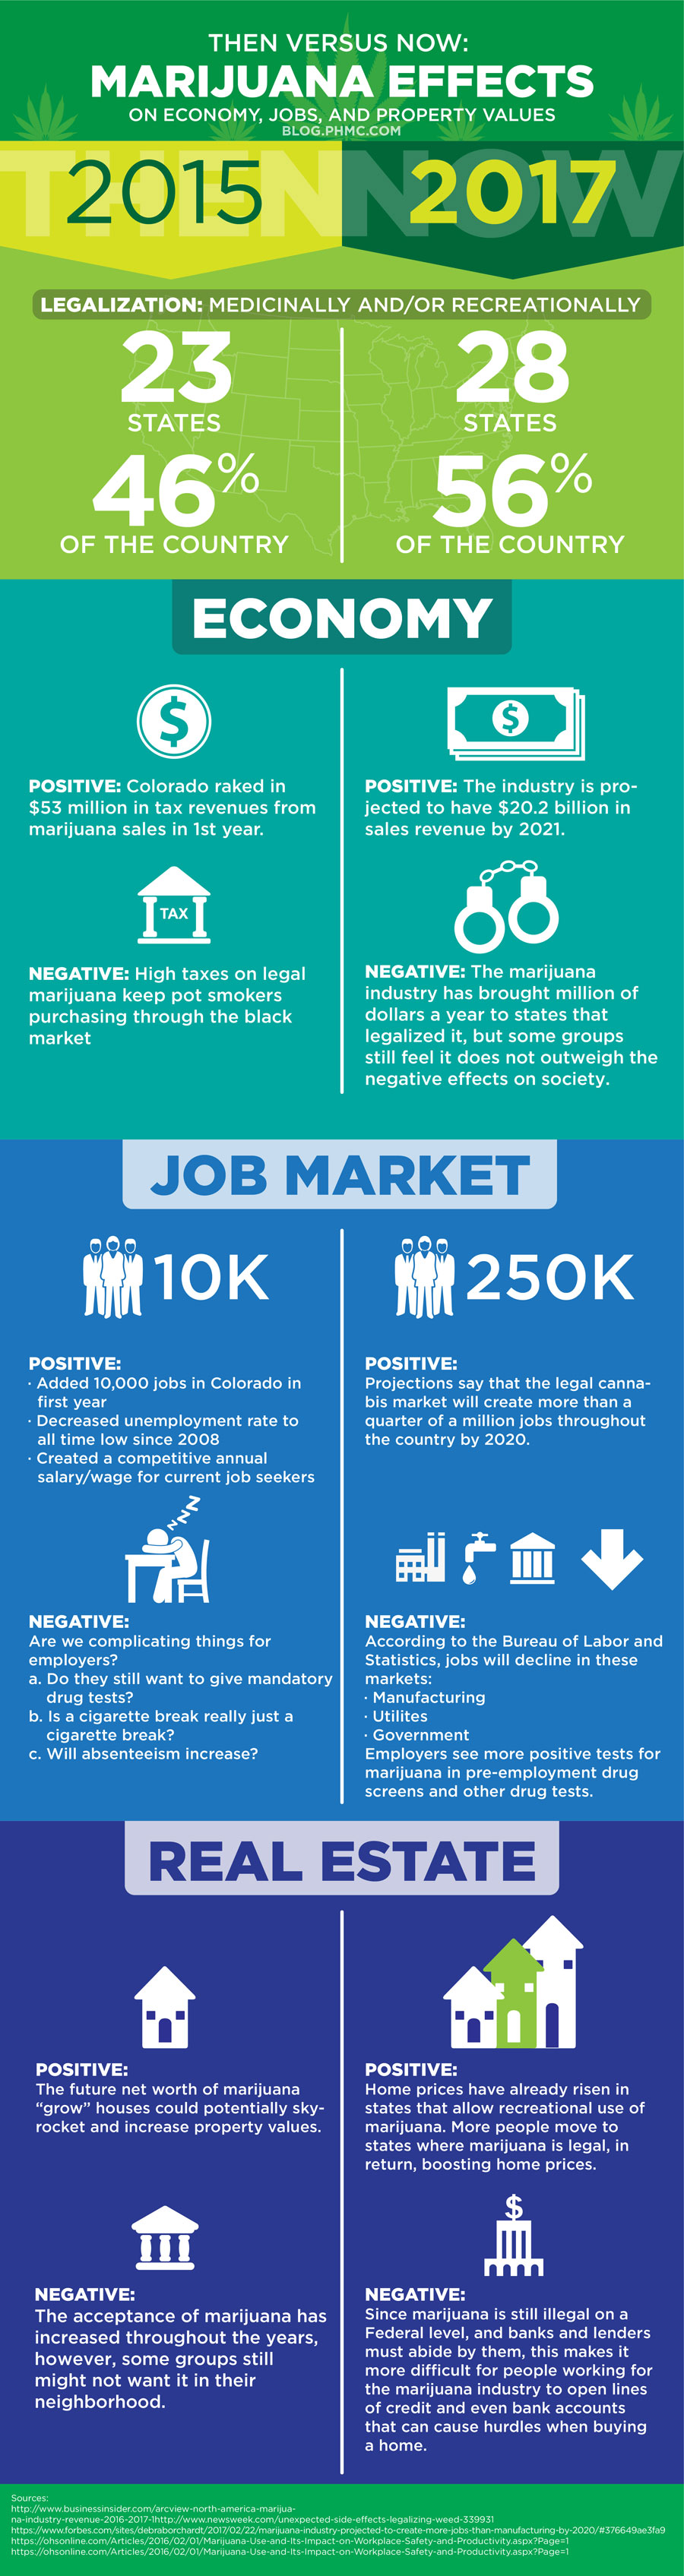 Then Versus Now: Marijuana Effects on Economy, Jobs, and Real Estate Find this image on blog.phmc.com